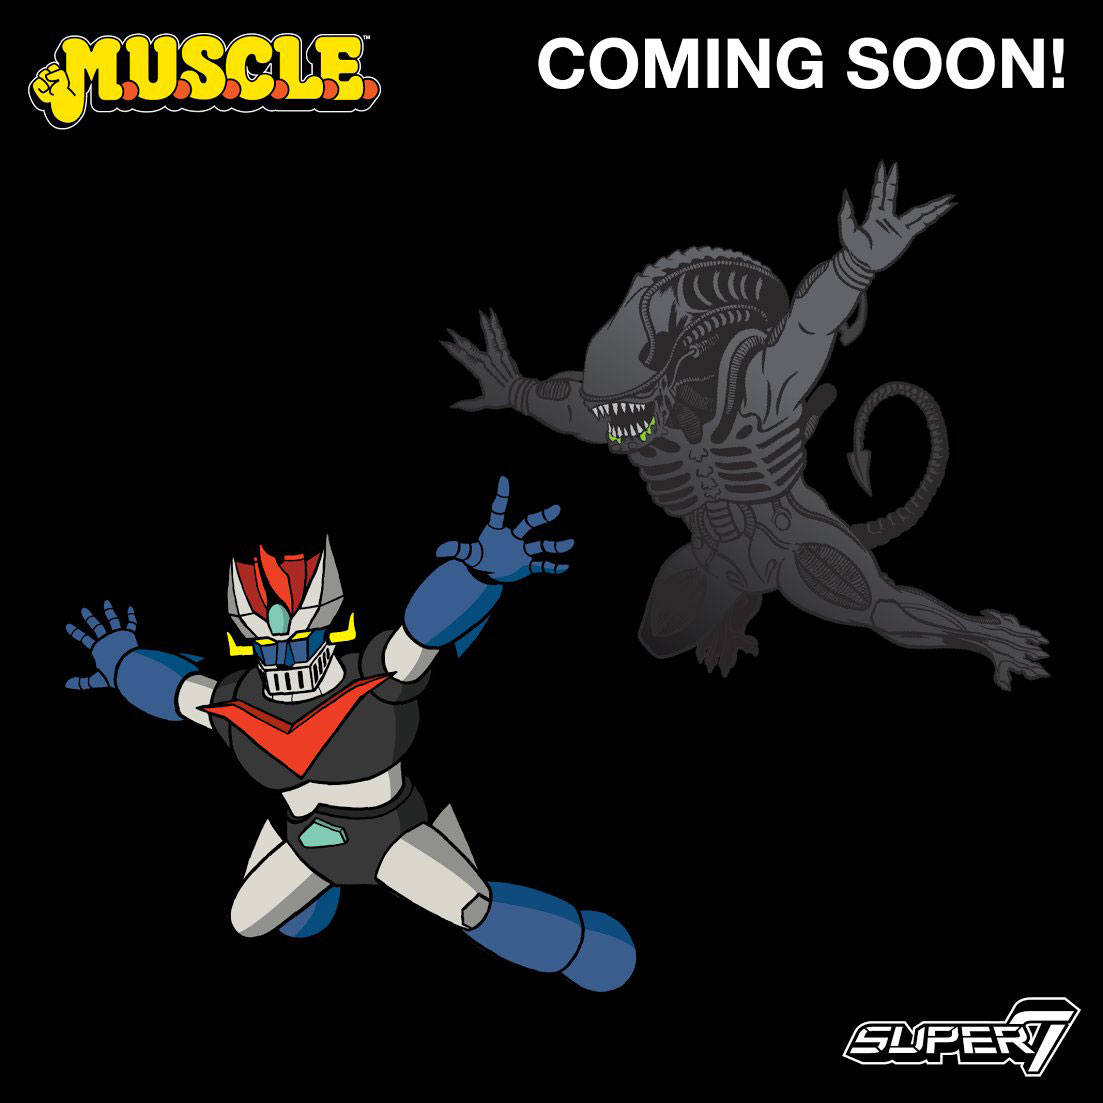 super7-aliens-super-shogun-muscle-figures